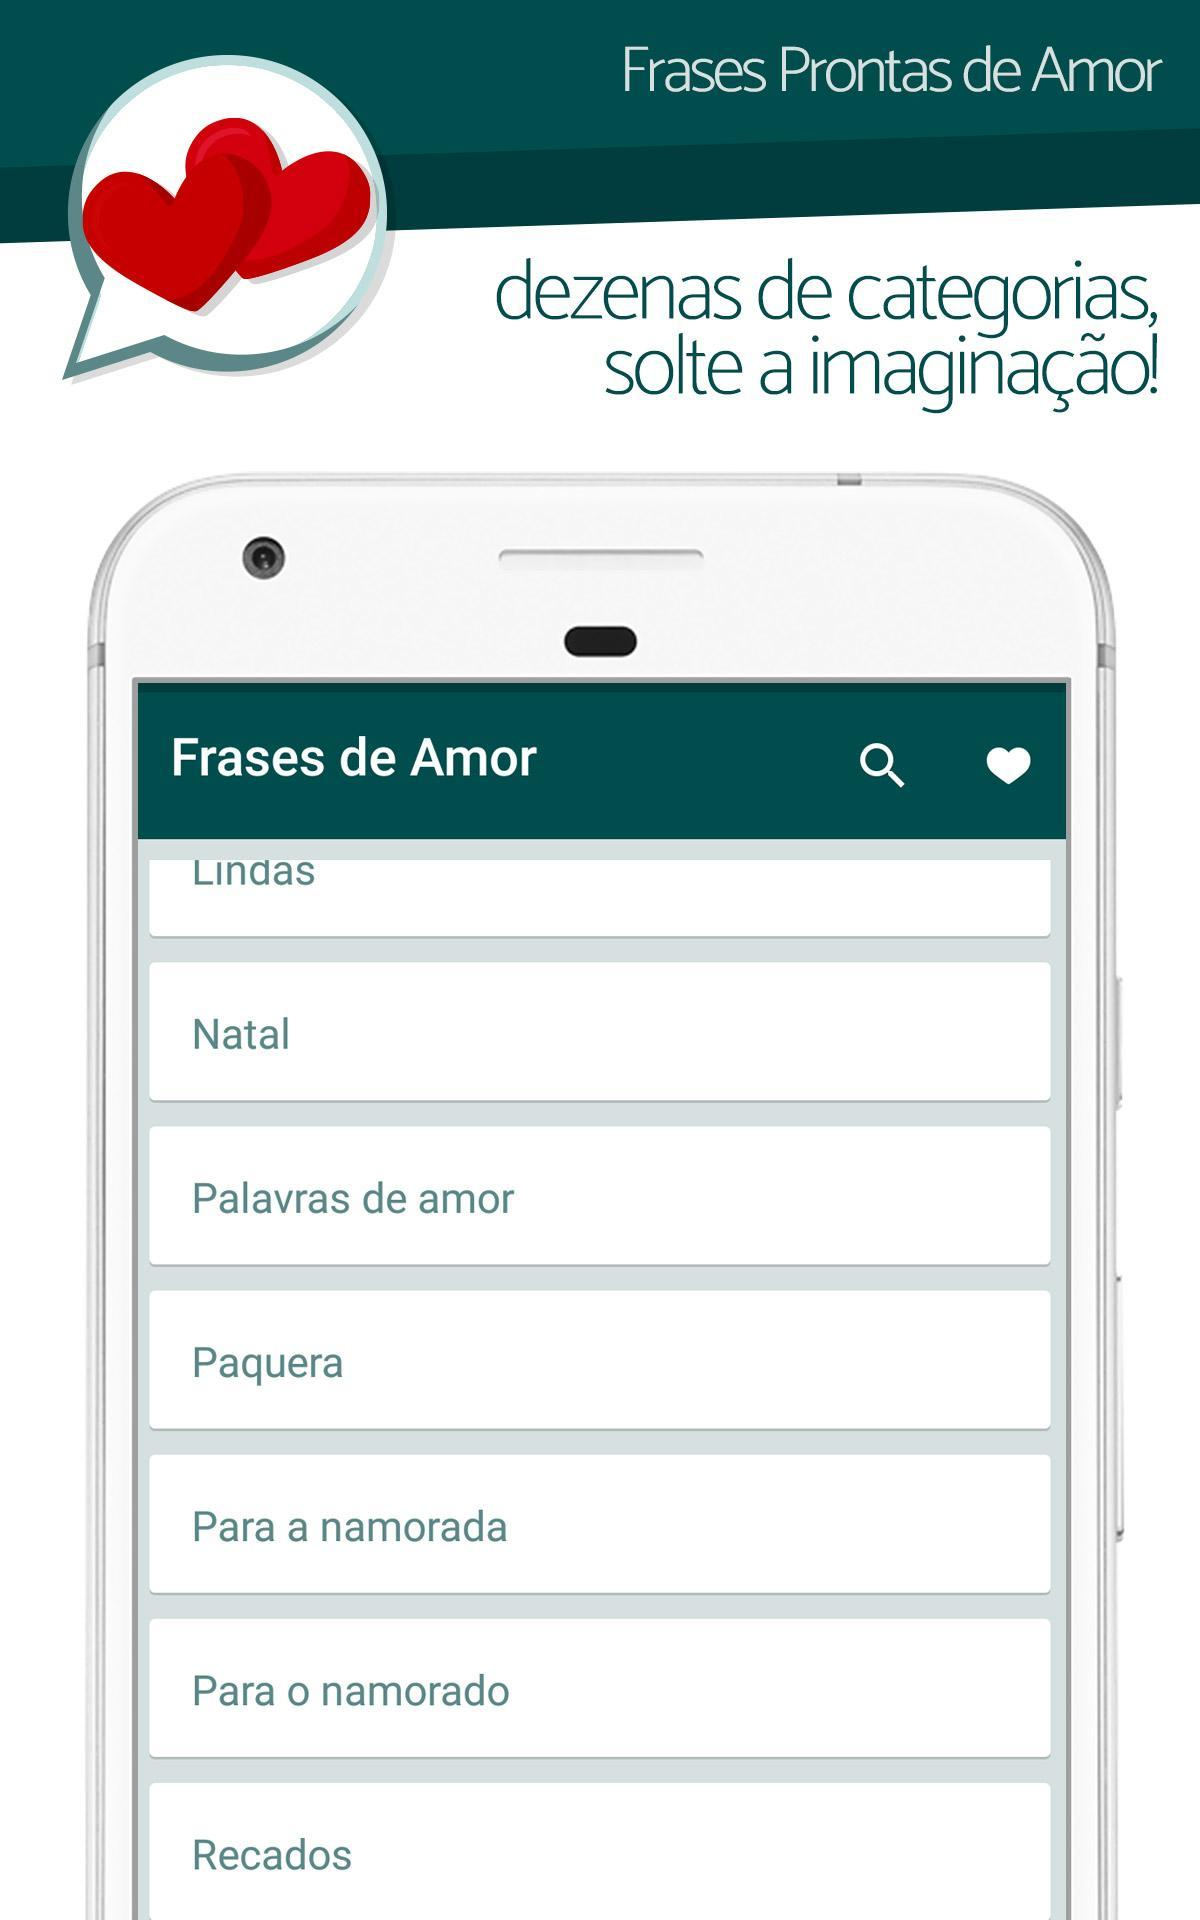 Frases Prontas De Amor For Android Apk Download